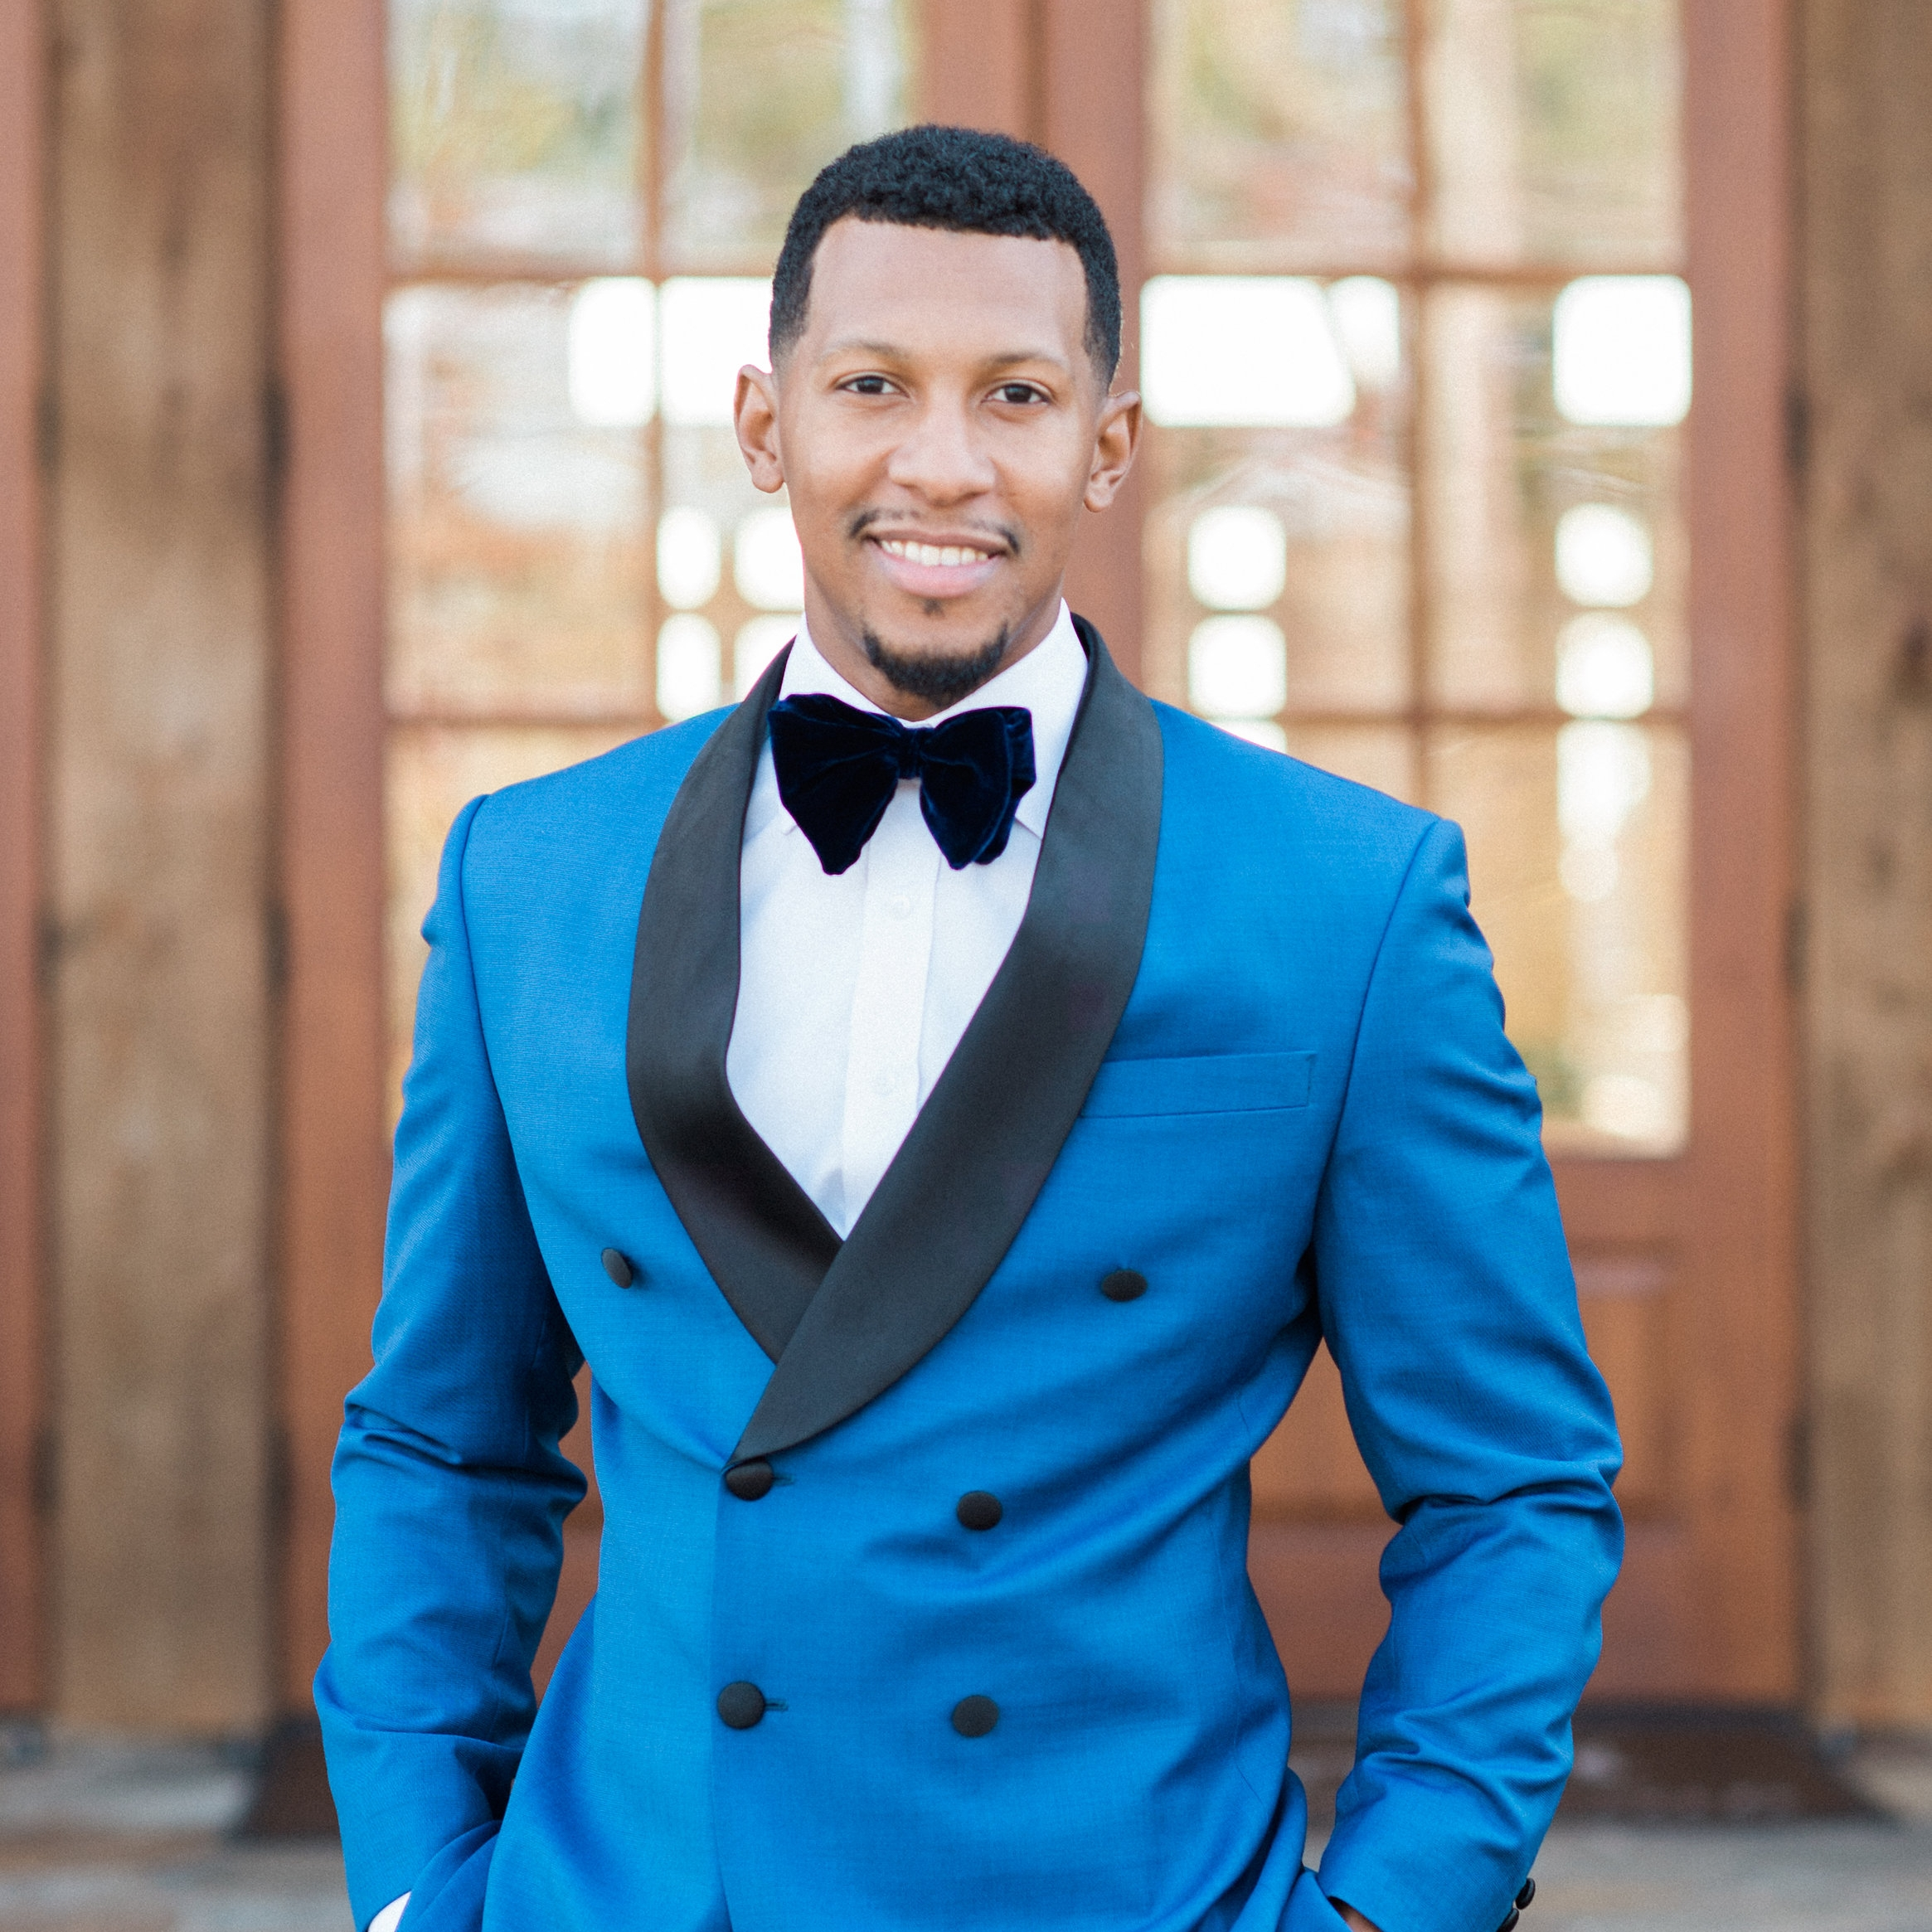 wiliam watkins.   Graduate of Clark Atlanta University where he received a B.A in Marketing with a minor in Finance. Will is currently an IT Strategic Partner for Gartner a Global research and advisory firm. He leads a team focused on growth and development within K-12, helping them execute and implement technology strategies that impact student success. Will is passionate about helping people reach their full potential, whether that is in the classroom through mentoring, the baseball field as a coach, or in corporate settings as a sponsor. He is also a proud husband and father.